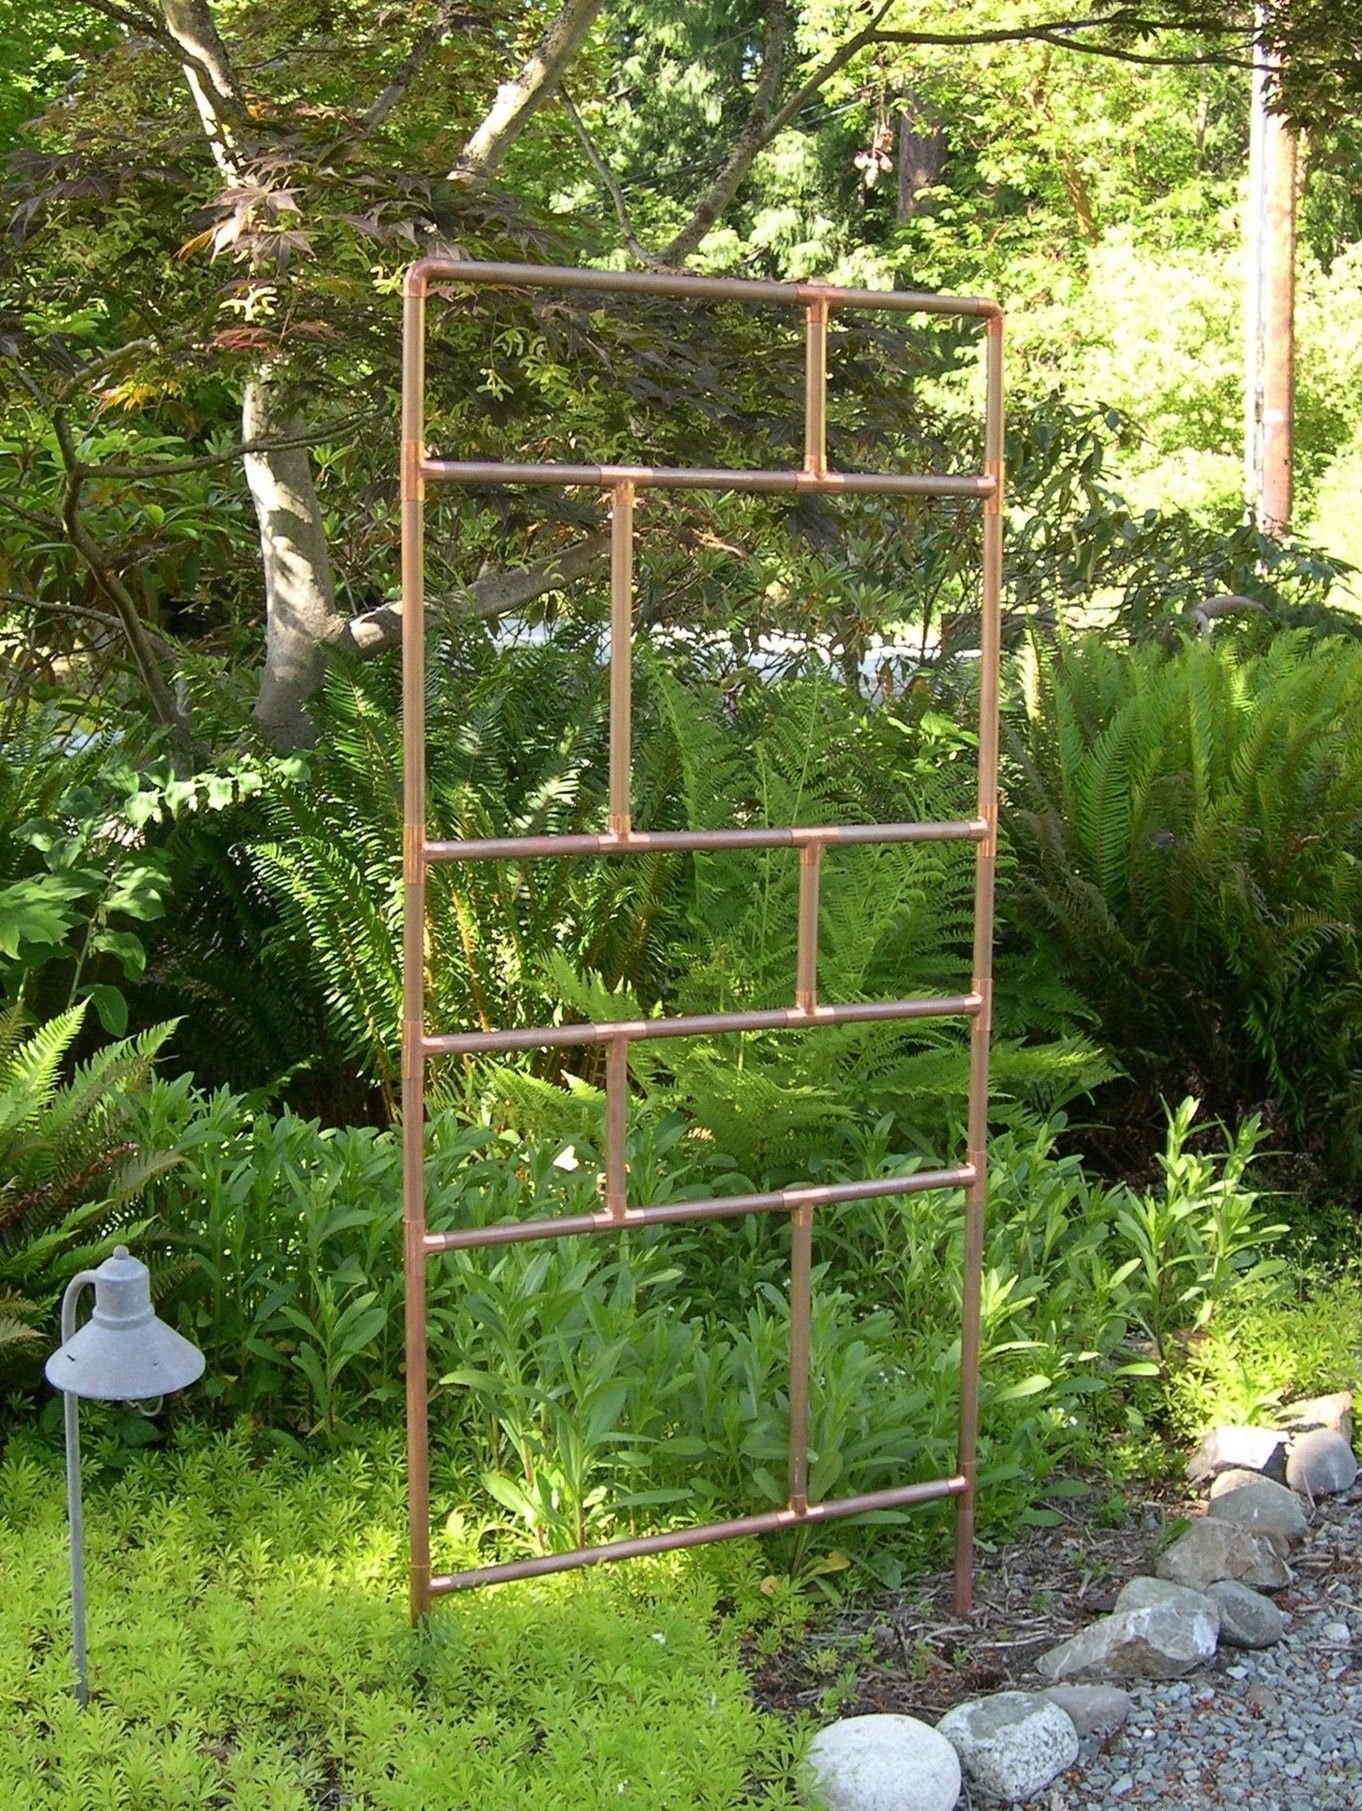 Ordinaire Garden Trellis Ideas This One Is 5 Feet Tall By 3 Feet Wide And Is Made